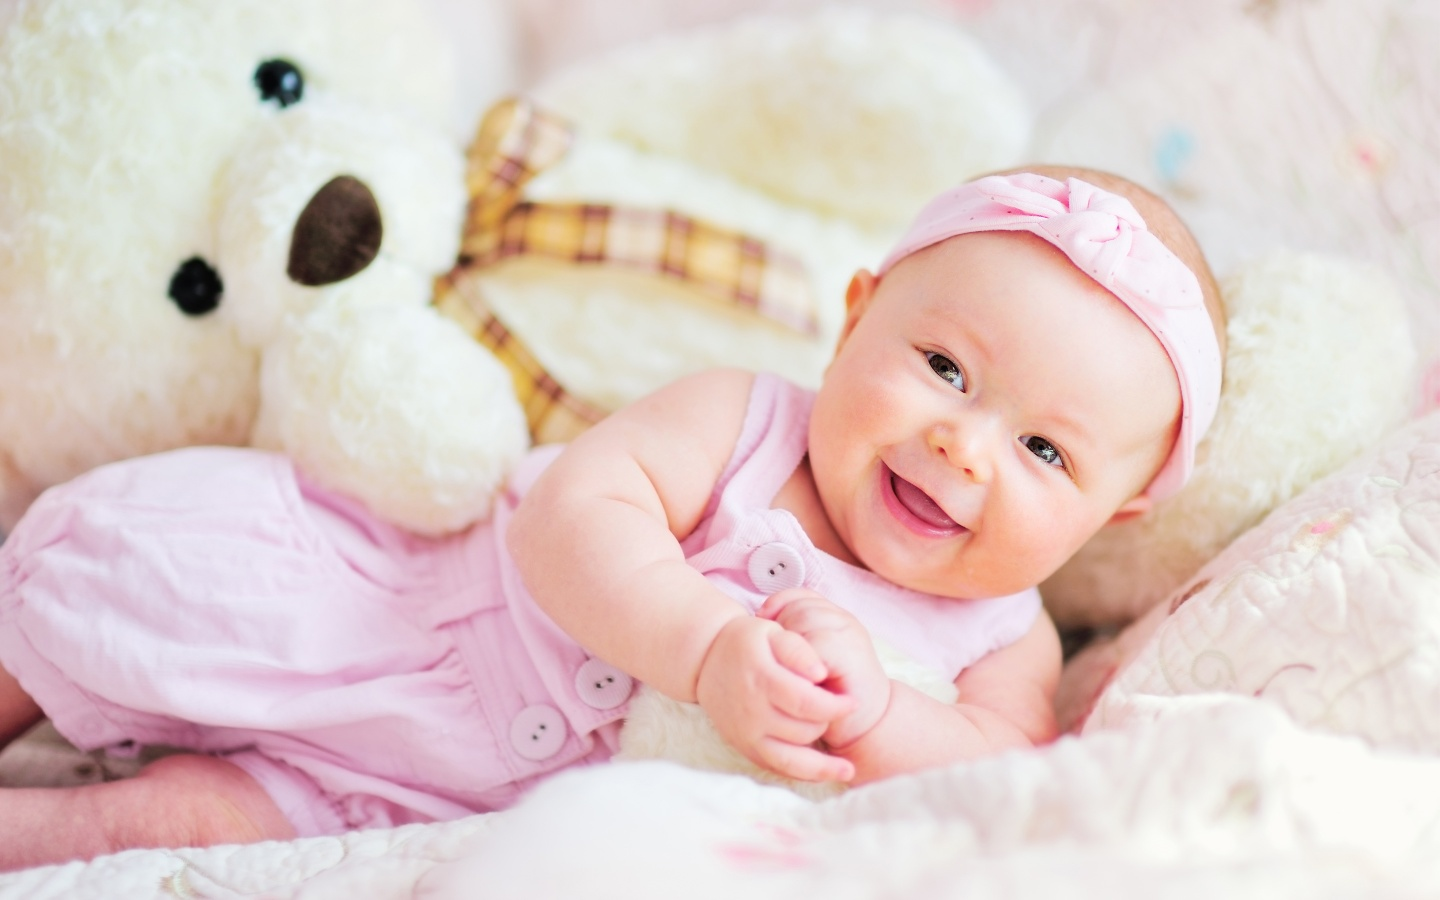 cute baby teddy bear wallpapers in jpg format for free download